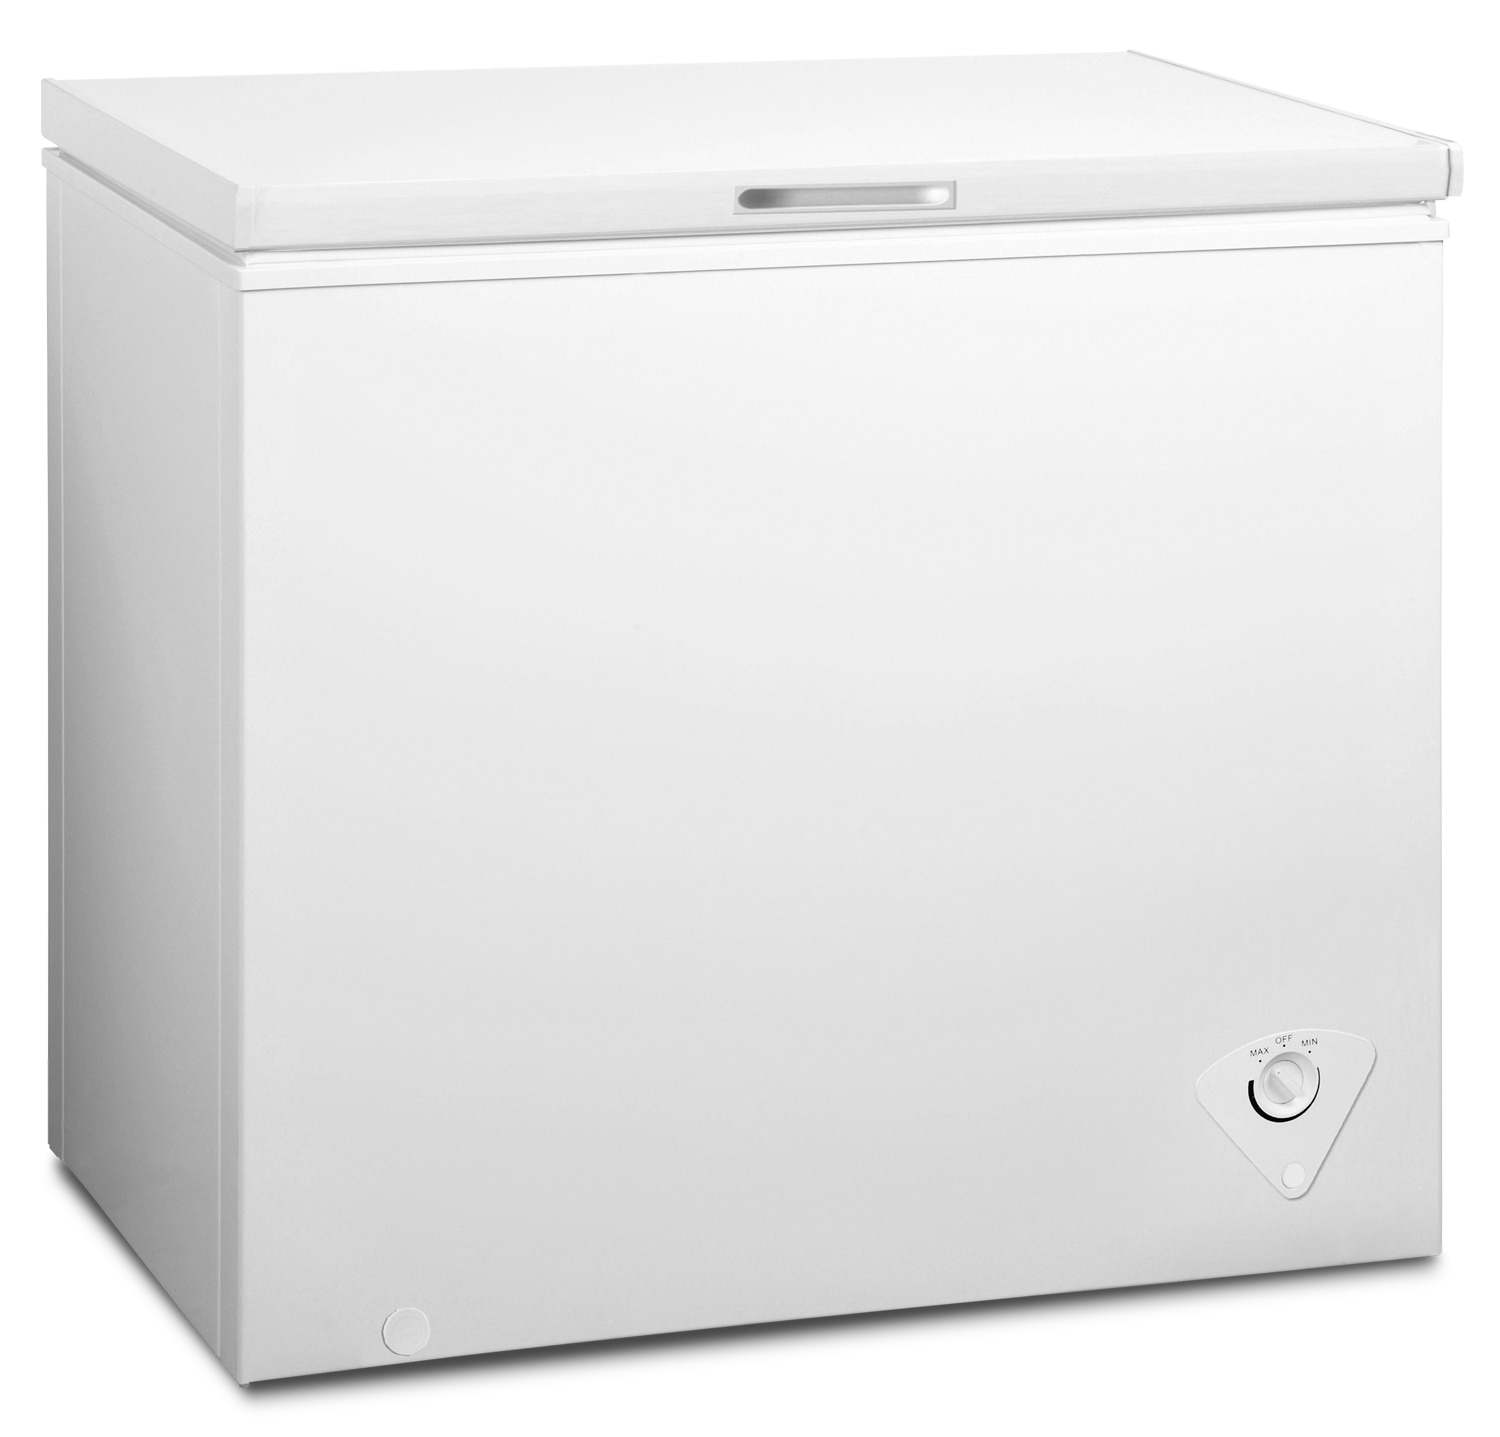 Midea 10.2 Cu. Ft. Chest Freezer – UR-BD295-E